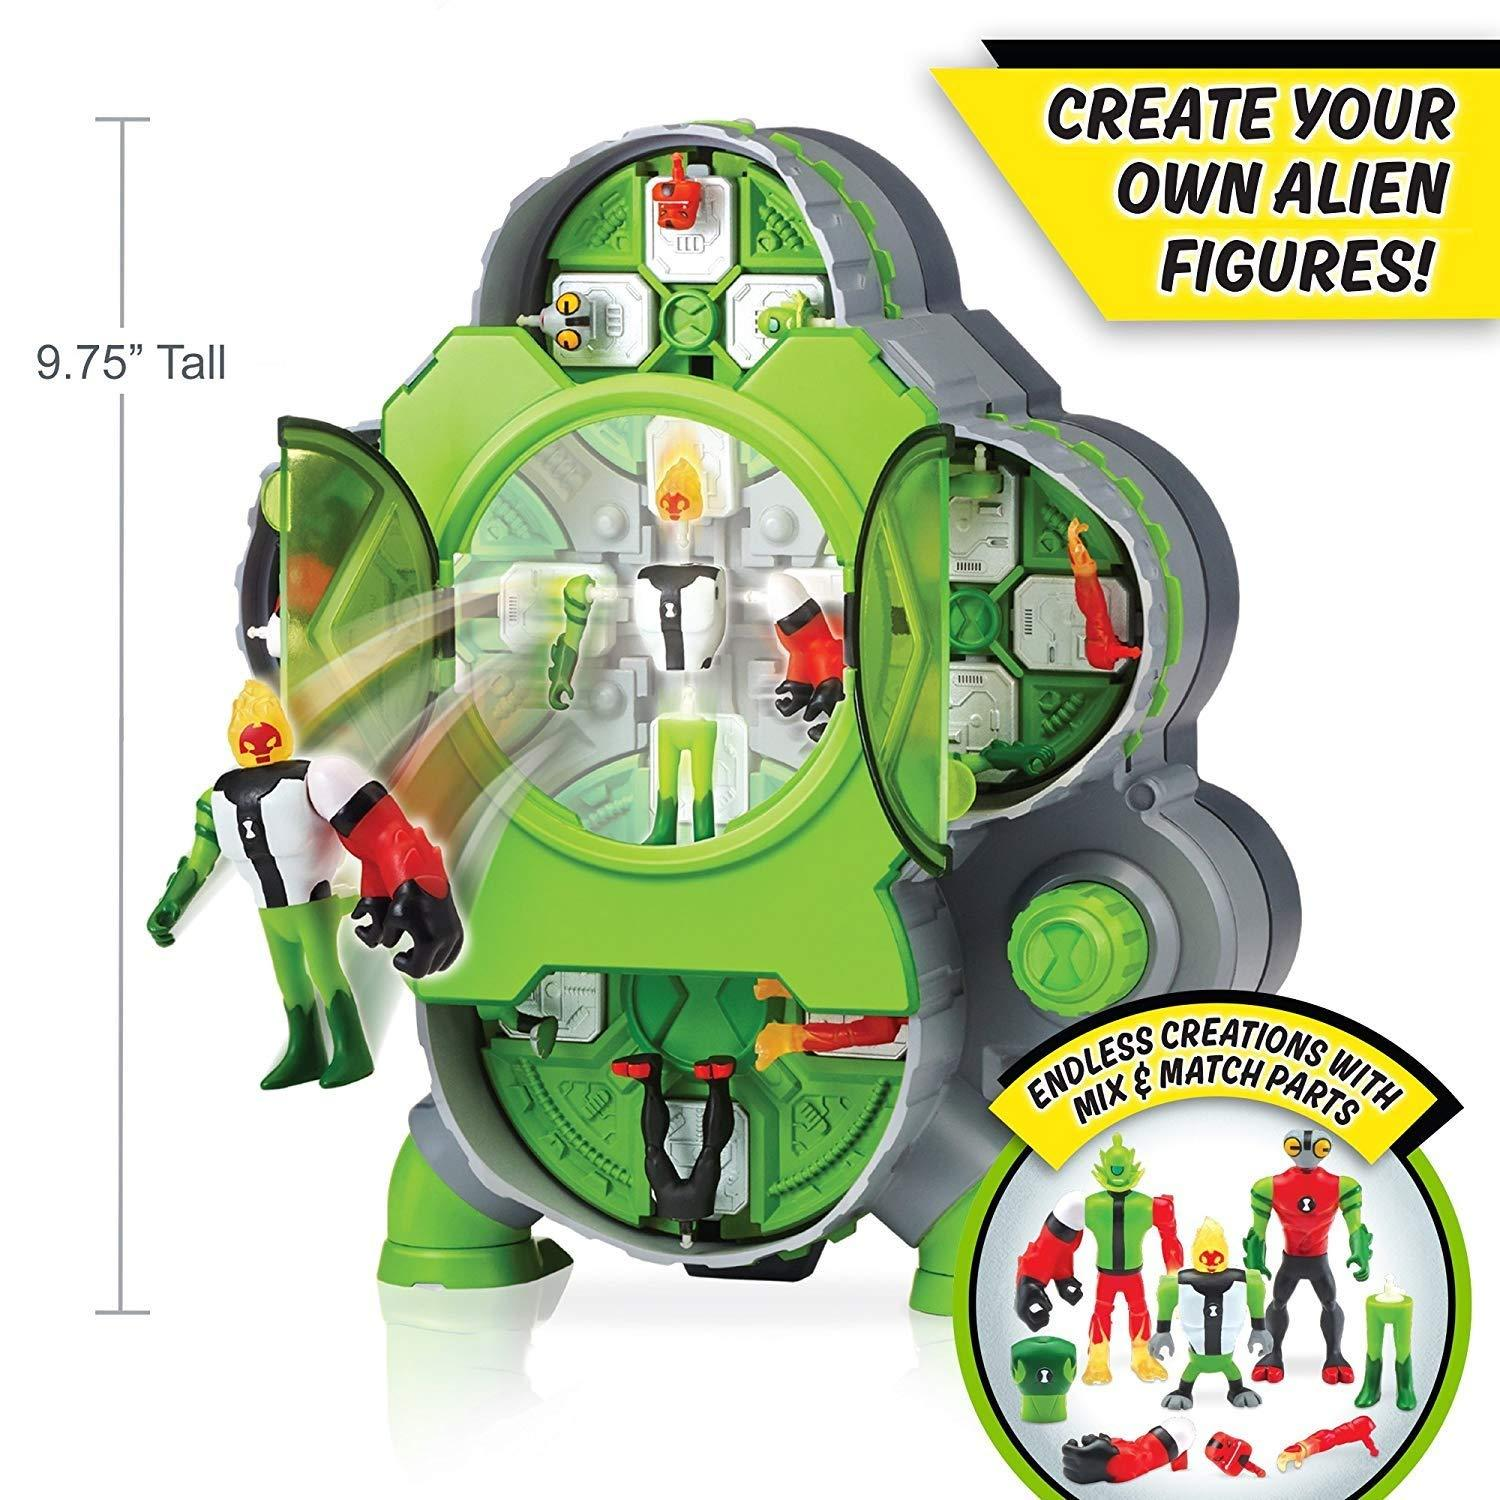 Ben 10 Philippines: Ben 10 price list - Toys, Shirts & Watches for